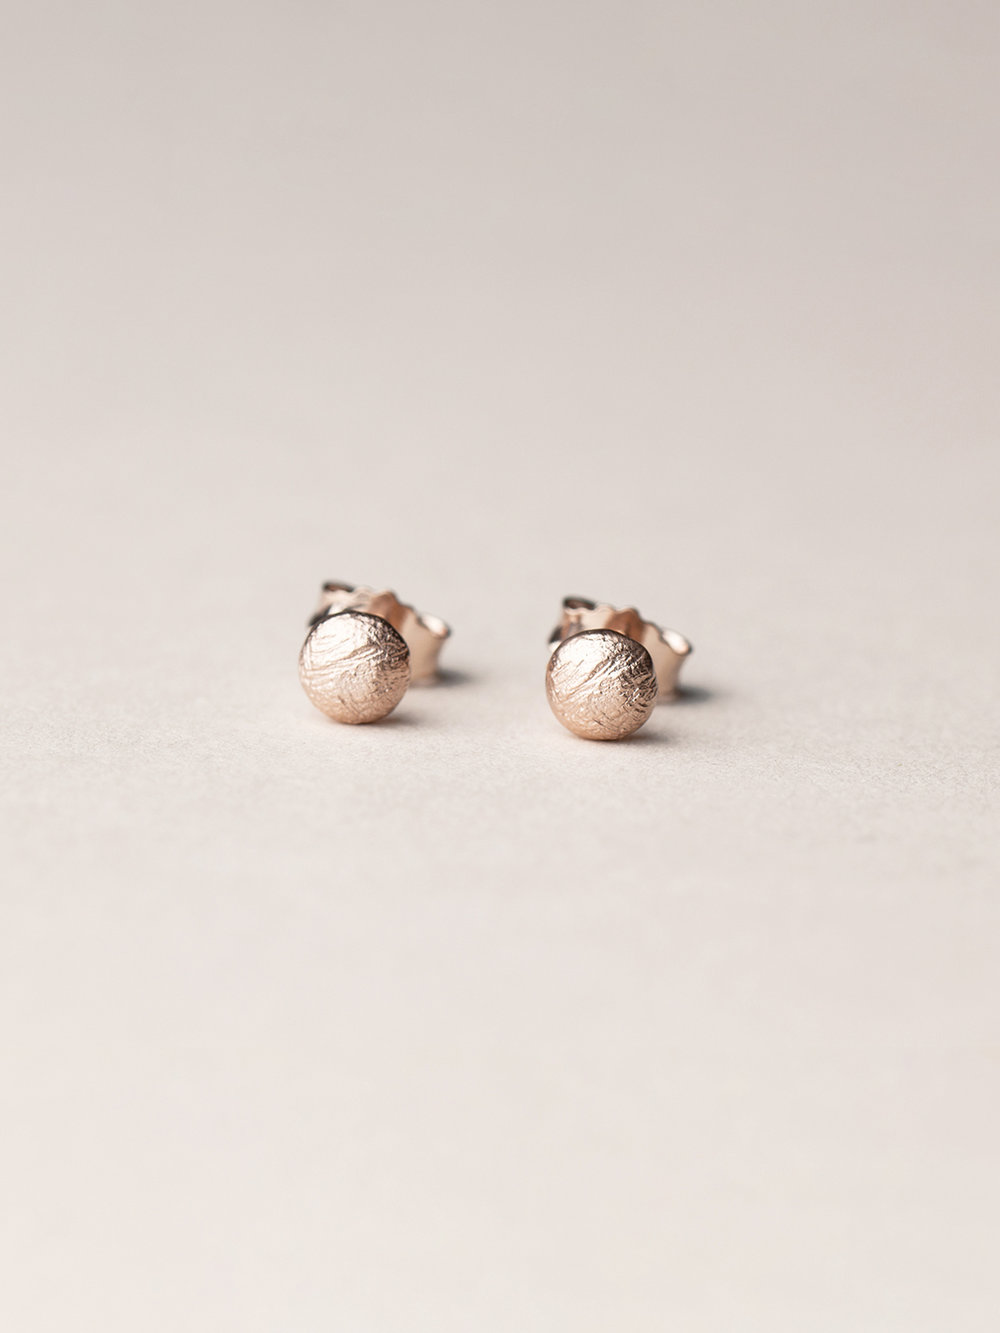 Runde Amia-Ohrstecker in rosegoldplatiertem  Silber  Amia, stud earrings in rosegoldplated silver